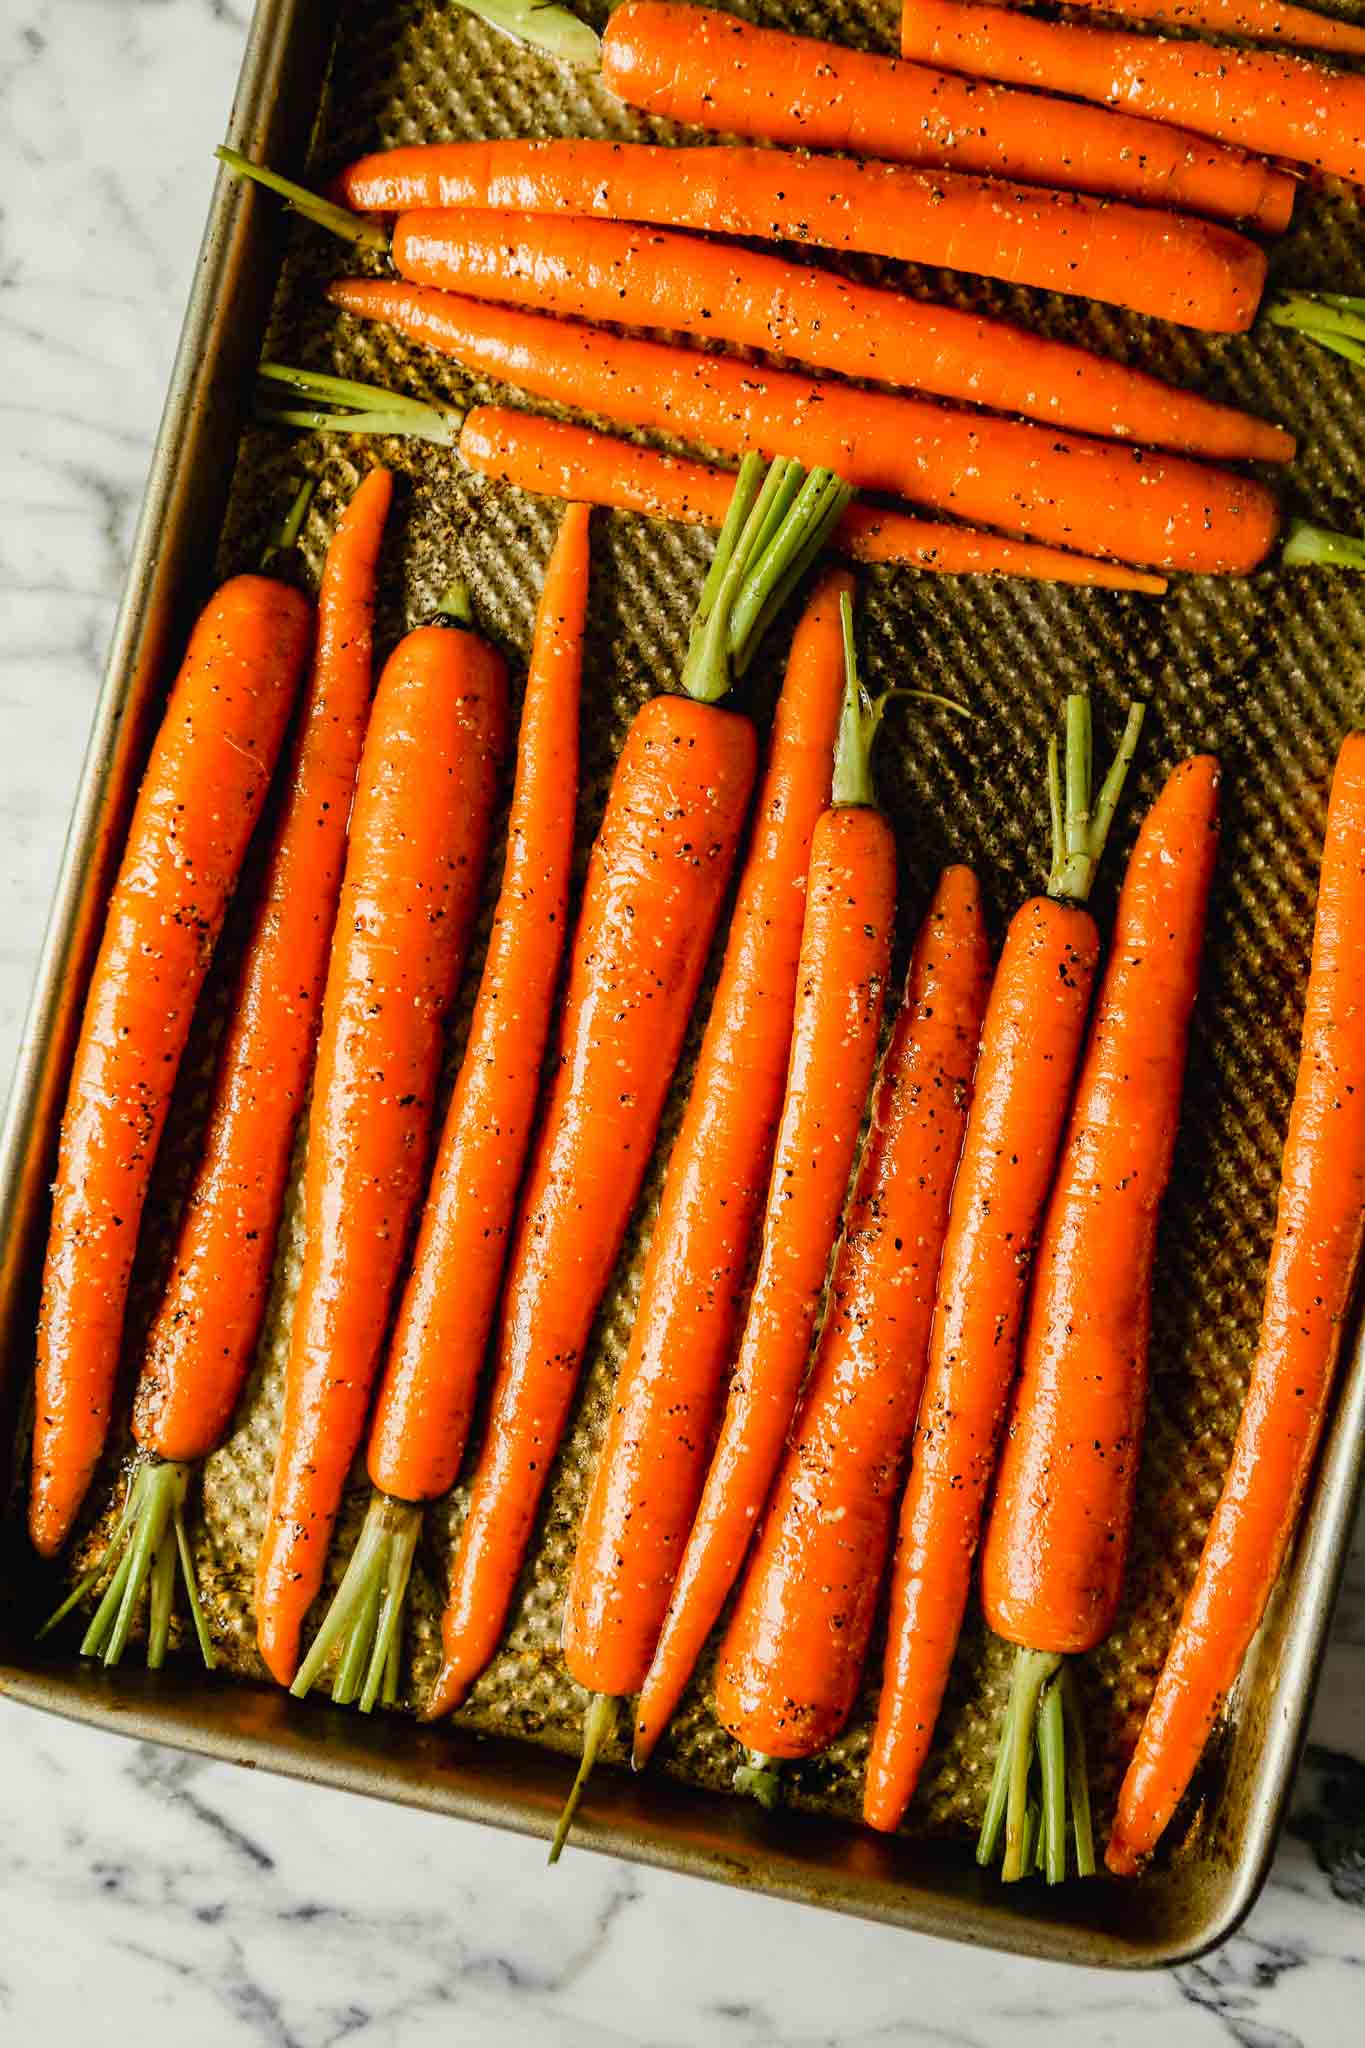 Photograph of halved carrots on a baking sheet